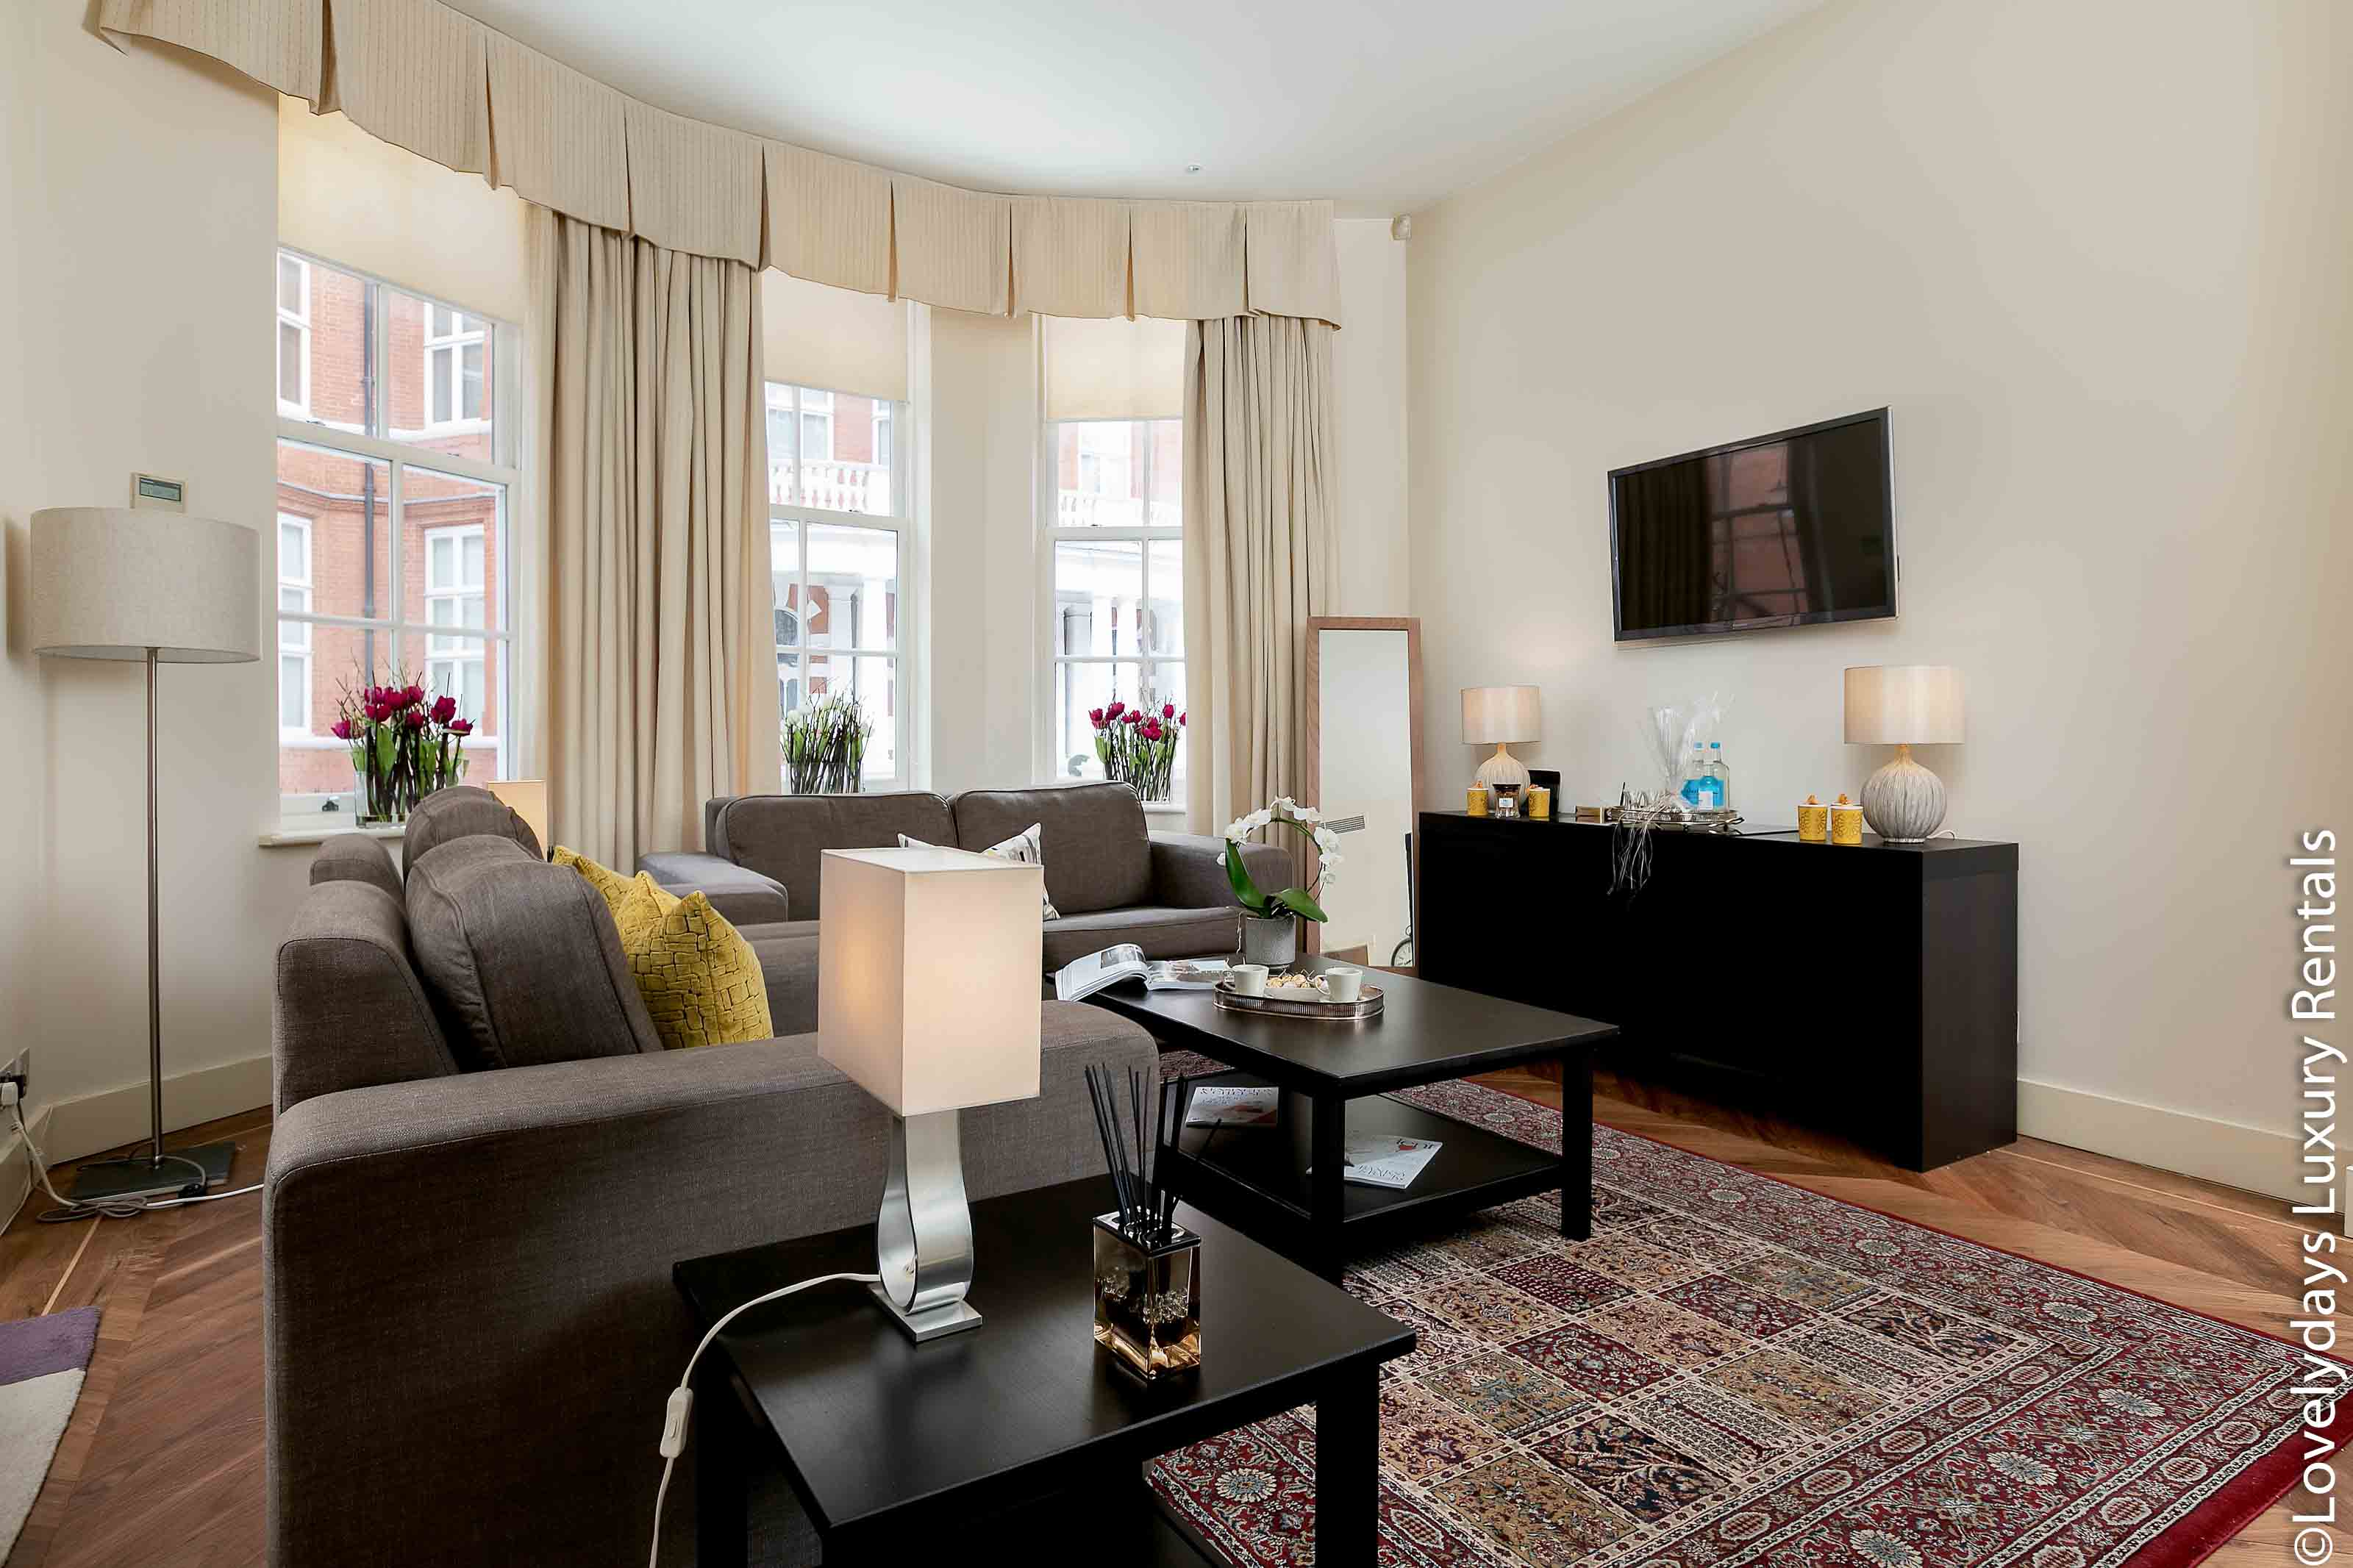 Lovelydays luxury service apartment rental - London - Knightsbridge - Hans Crescent - Partner - 2 bedrooms - 2 bathrooms - Comfortable sofa - TV system - A/C system - a5403e8754e5 - Lovelydays